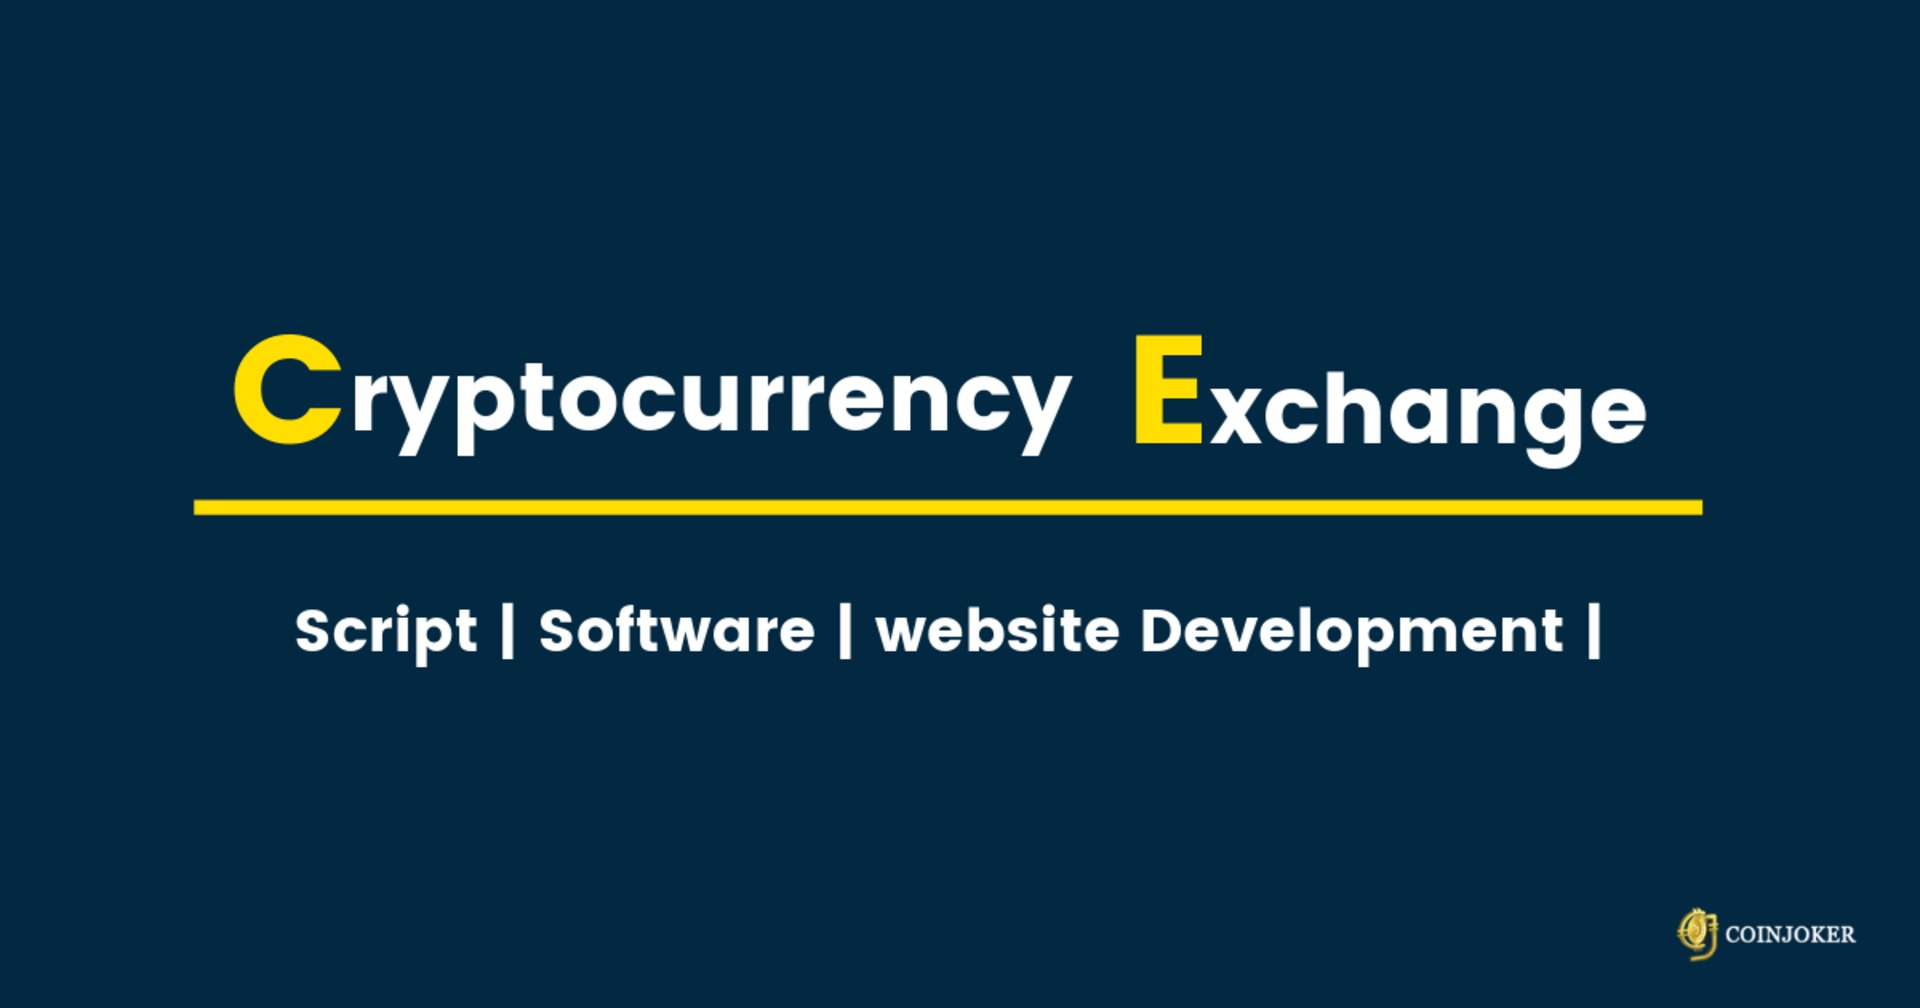 Where to find a well-defined cryptocurrency exchange script? image